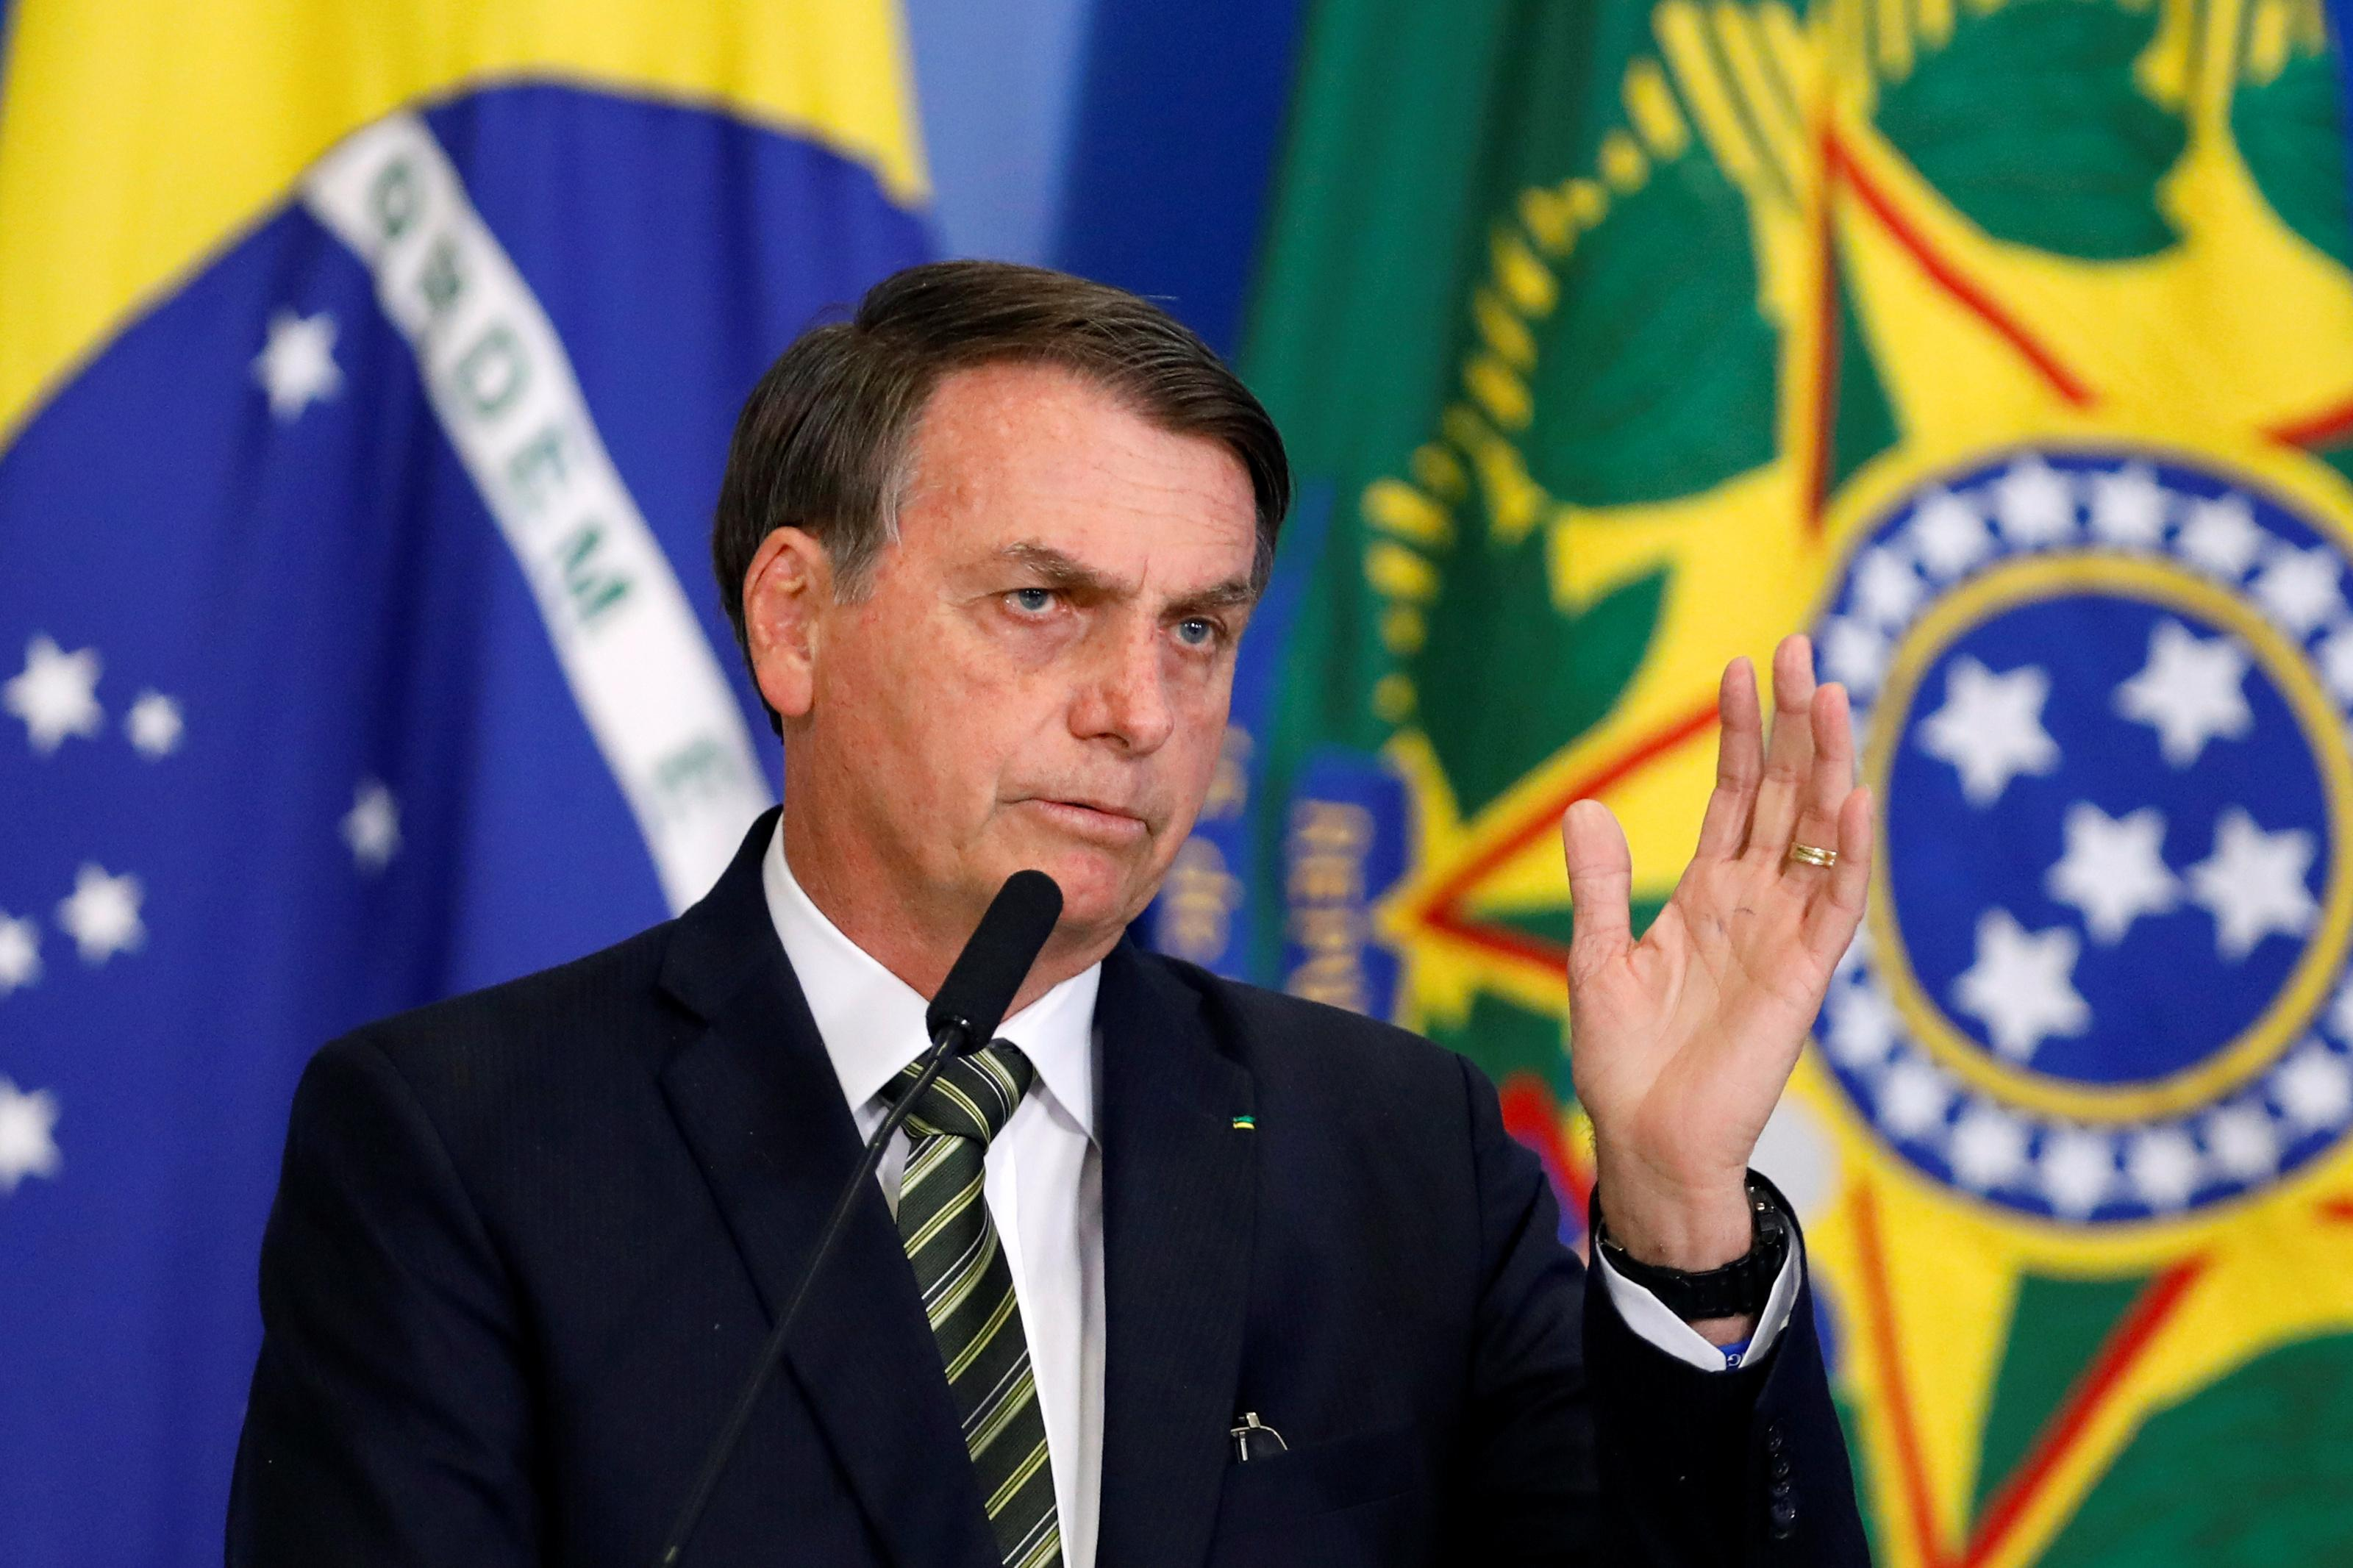 Brazil's Bolsonaro extols convicted torturer as a 'national hero'